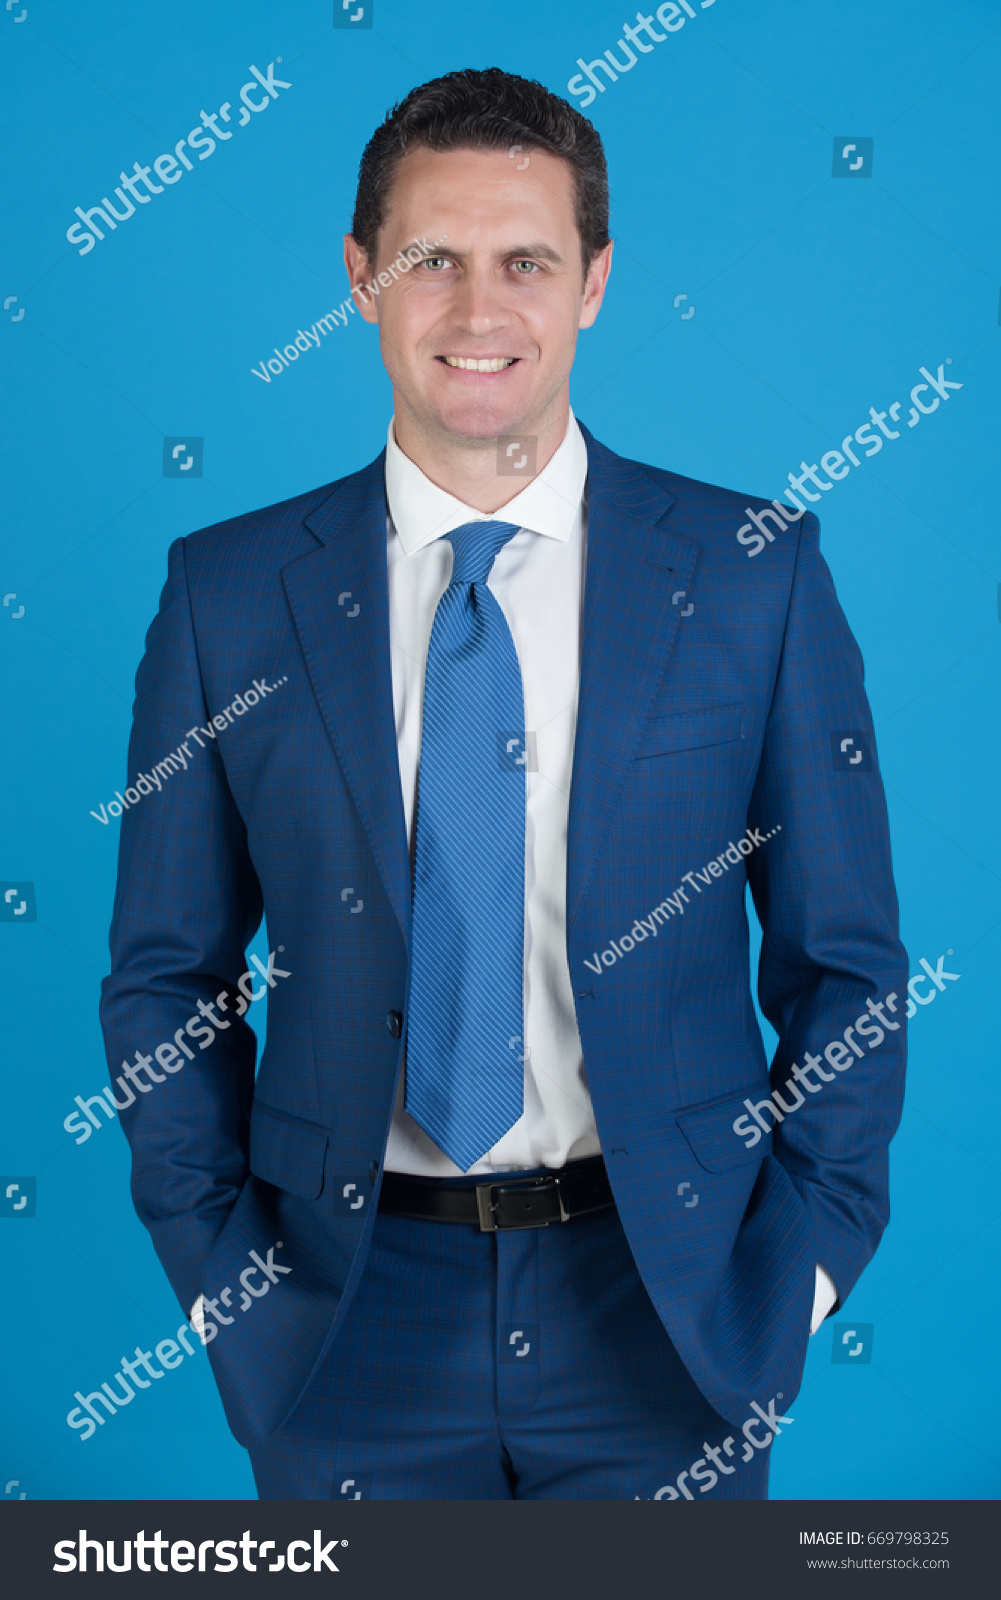 d16364970 boss smiling with hands in pockets in fashionable navy formal suit, white  shirt and tie on blue background. Business, fashion and success - Image